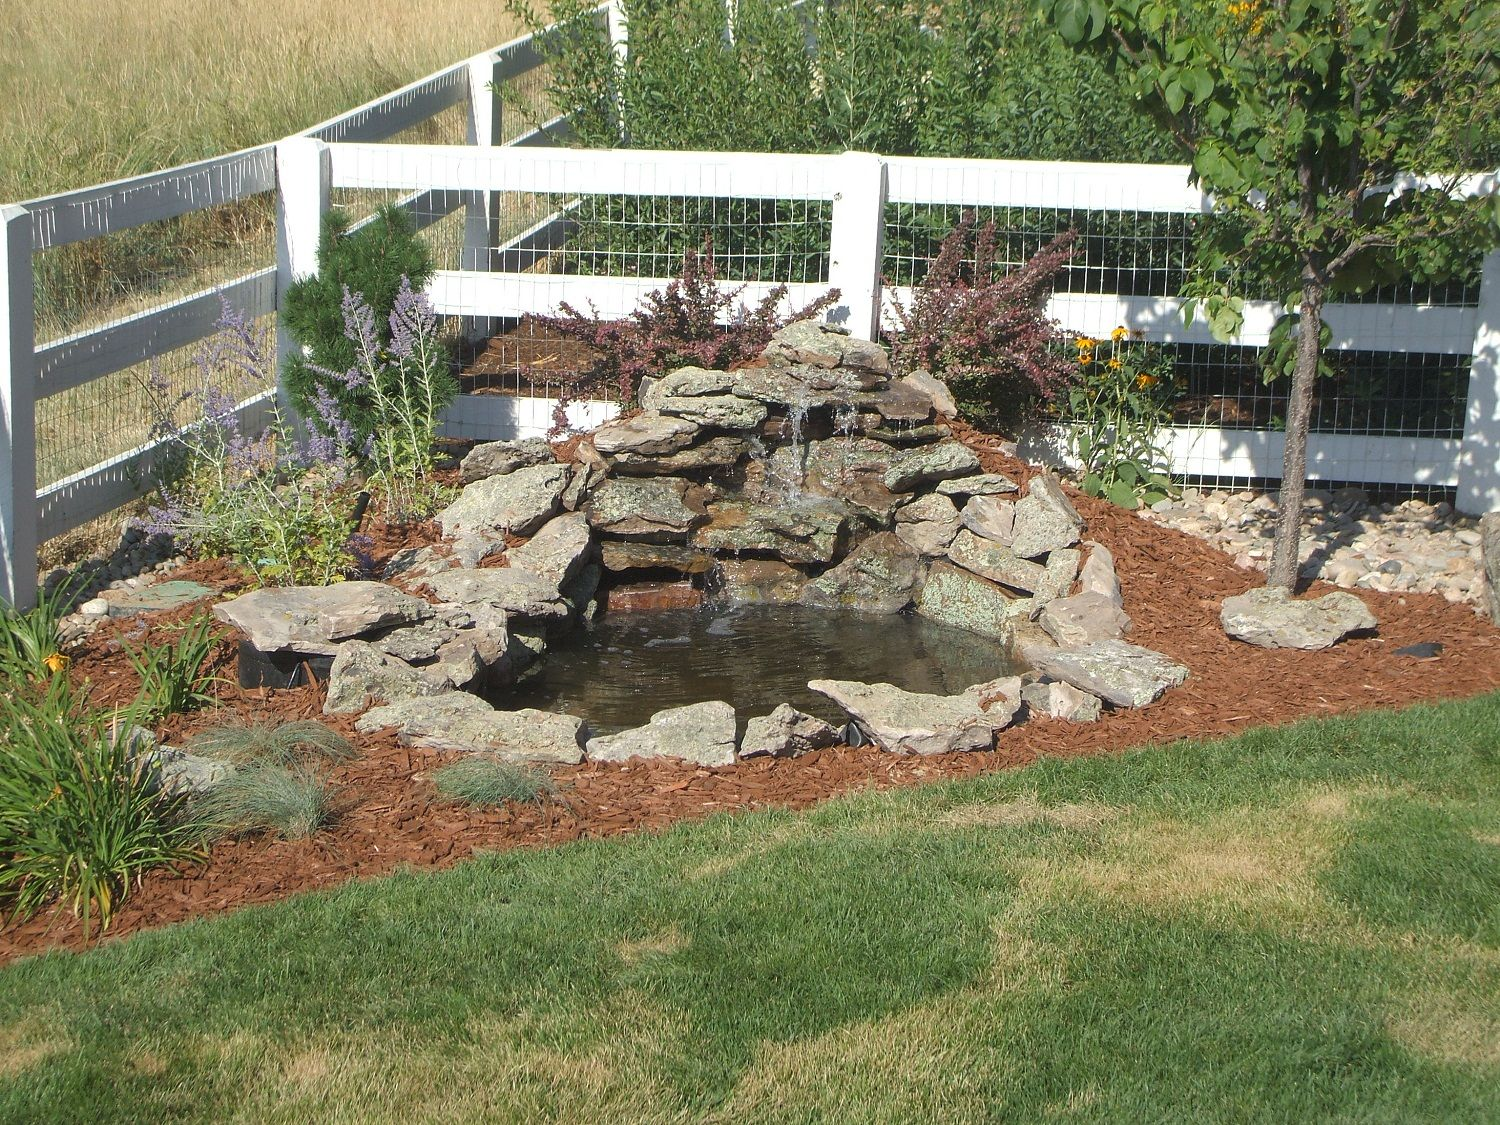 Garden and patio small diy ponds with waterfall and stone for Garden pond waterfall ideas